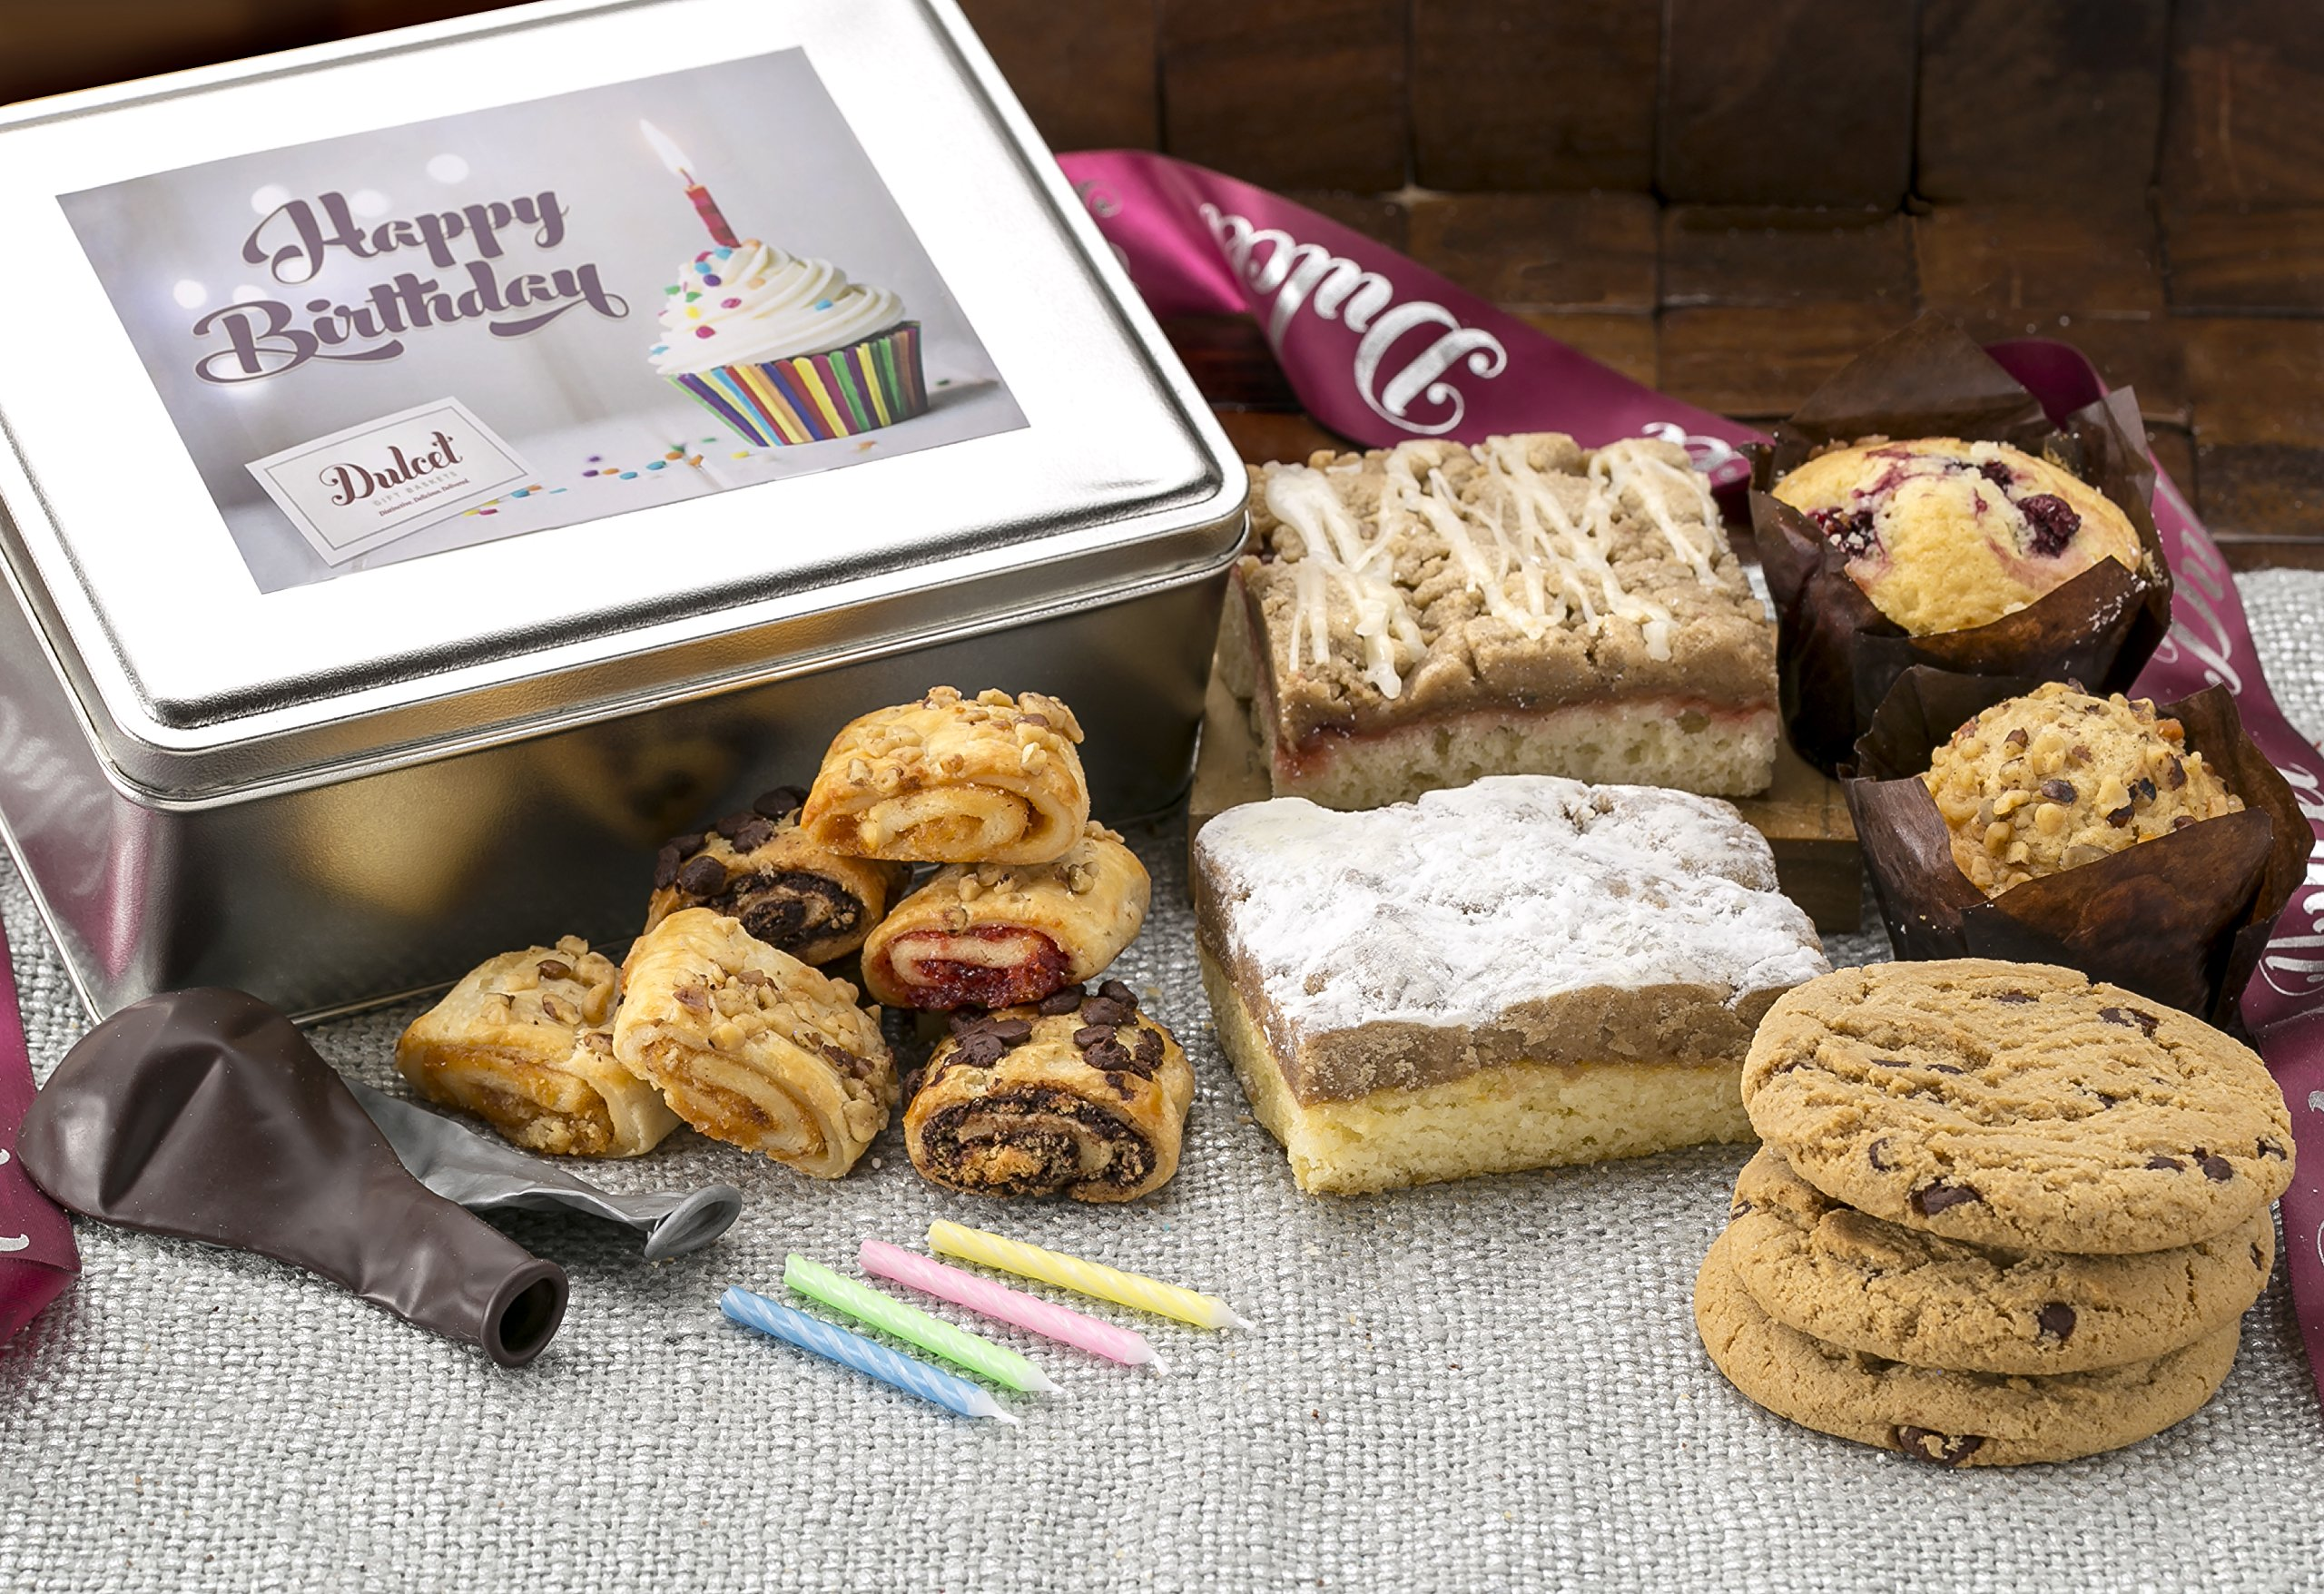 Dulcet Gift Baskets Happy Birthday Deluxe Food Gift Box, Includes Fresh Baked Raspberry and Old Fashioned Crumb Cake, Ideal Present For Women, Family & Friends.